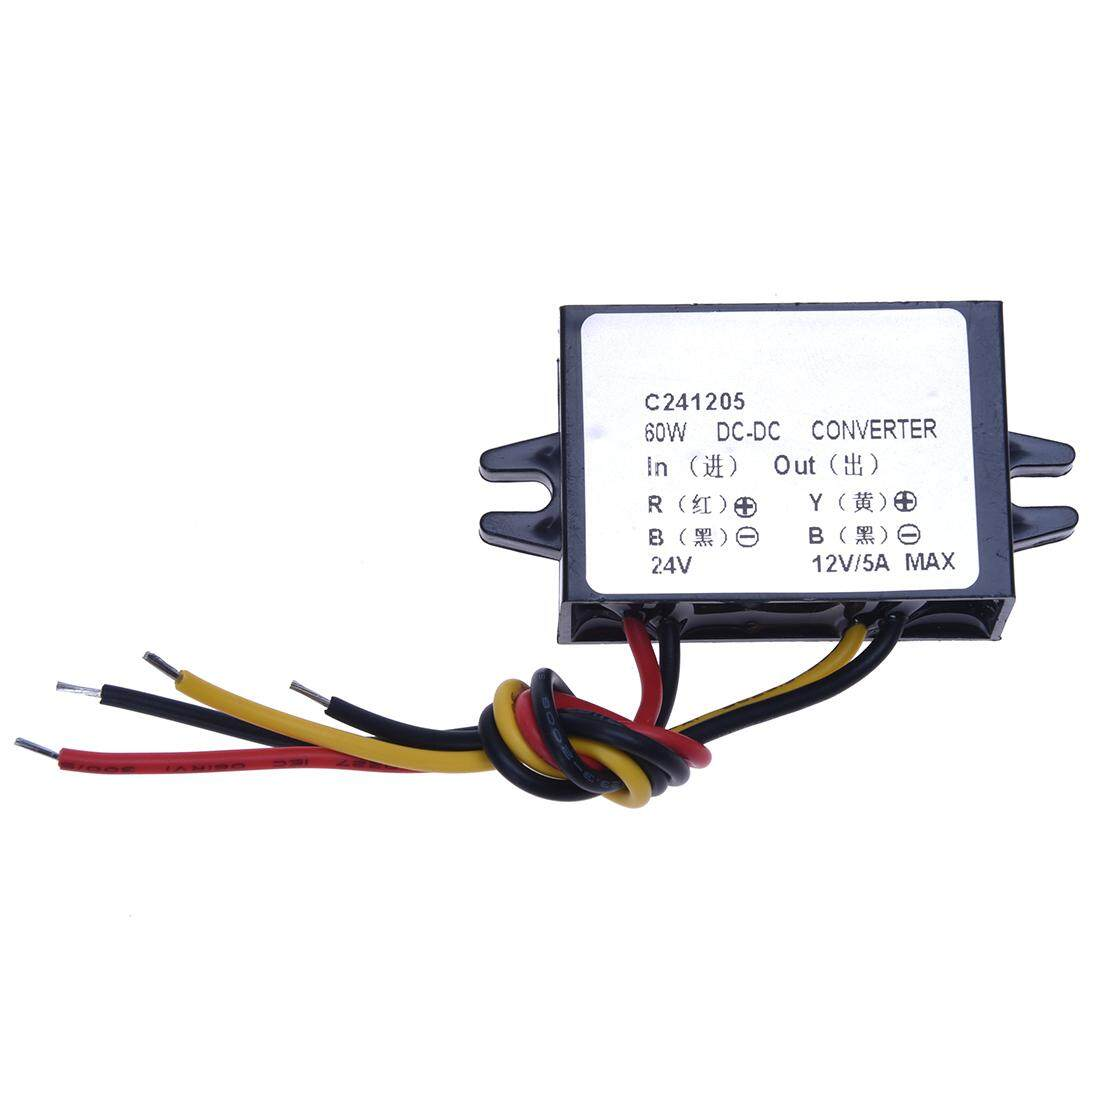 Dc / Dc Converters Electric Buck Converter 24v To 12v 60w 5a Step-Down Module Car Power Supply Voltage By Sunnny2015.